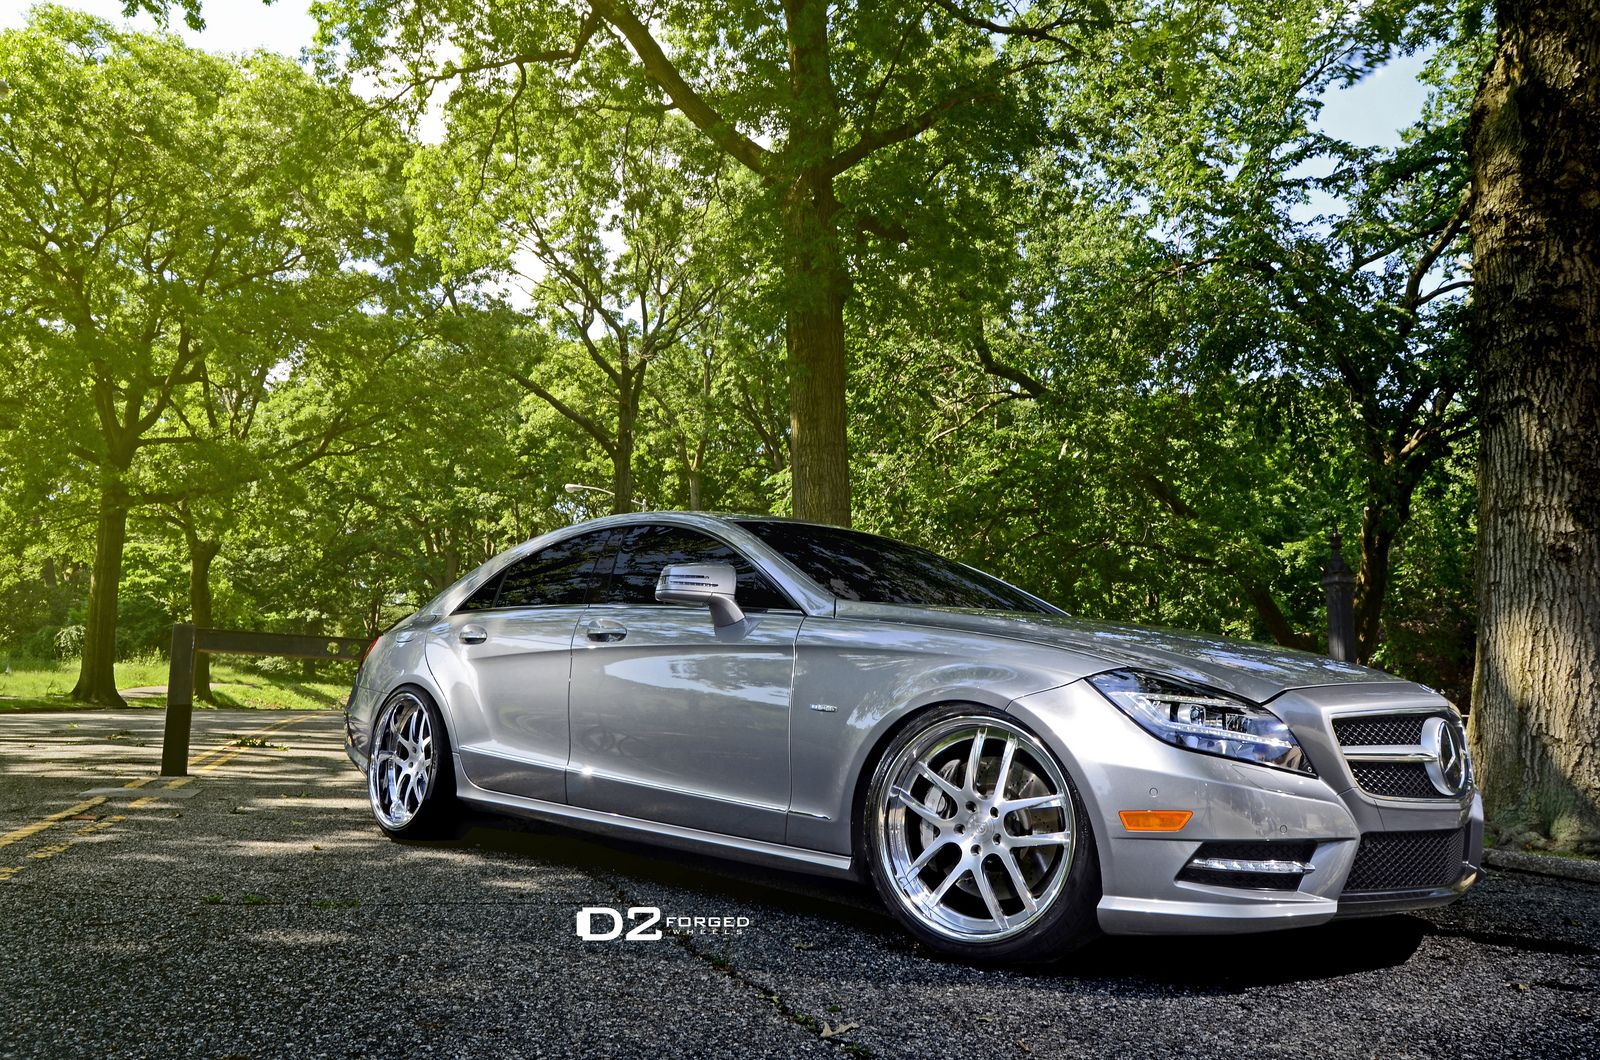 Mercedes Benz Cls550 20 D2forged Fms08 Wheels 2008 Cls 550 Wide Kit 2090